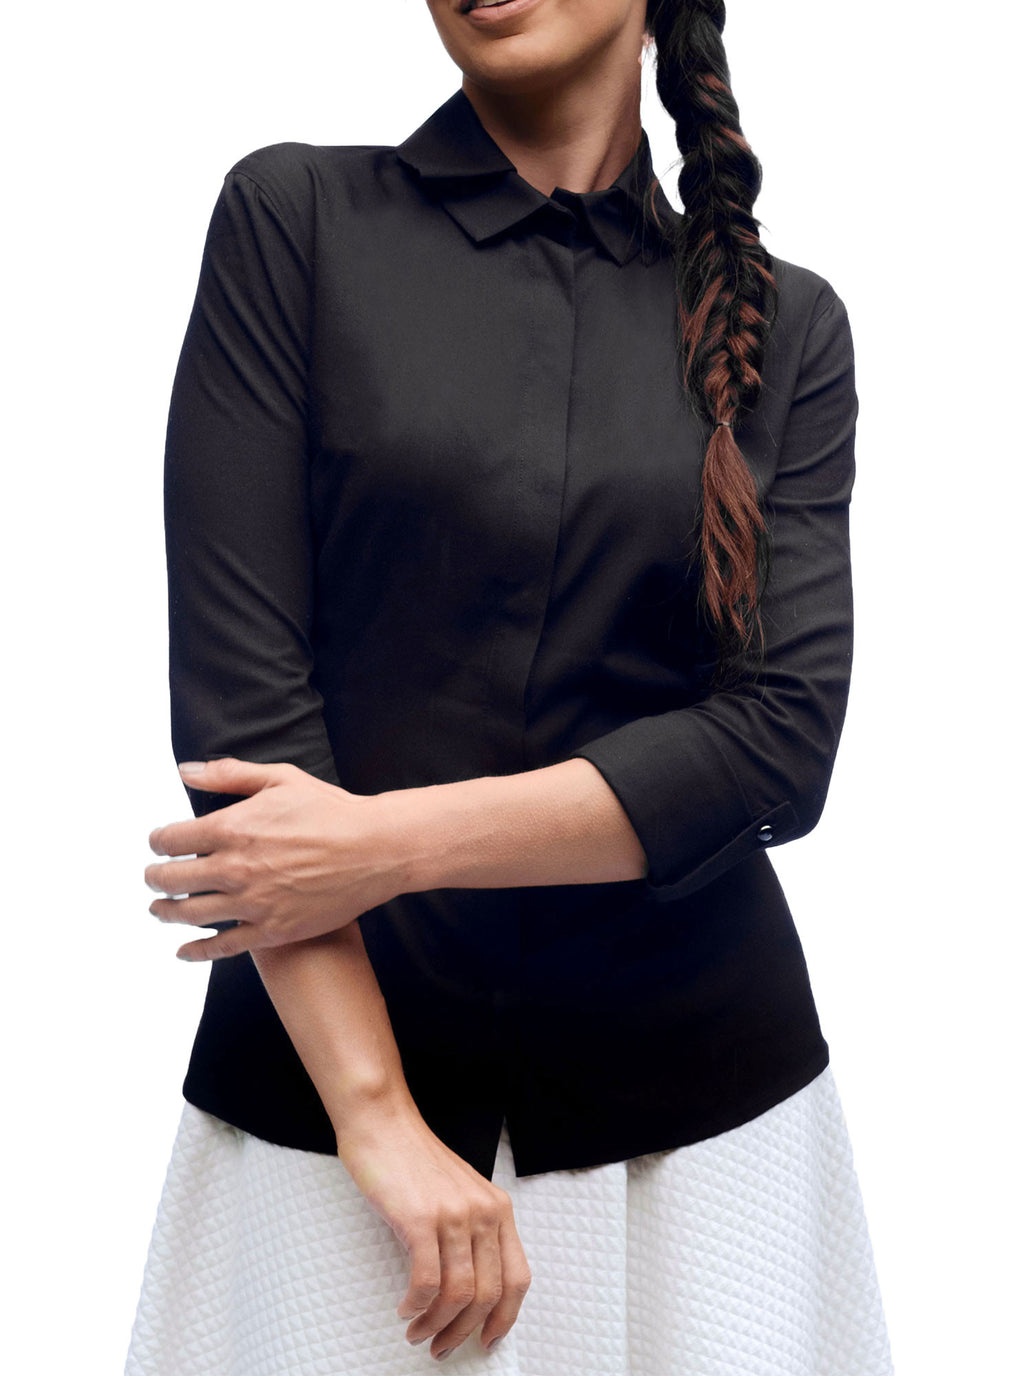 Black Bamboo Shirt with Adjustable Sleeves ODER